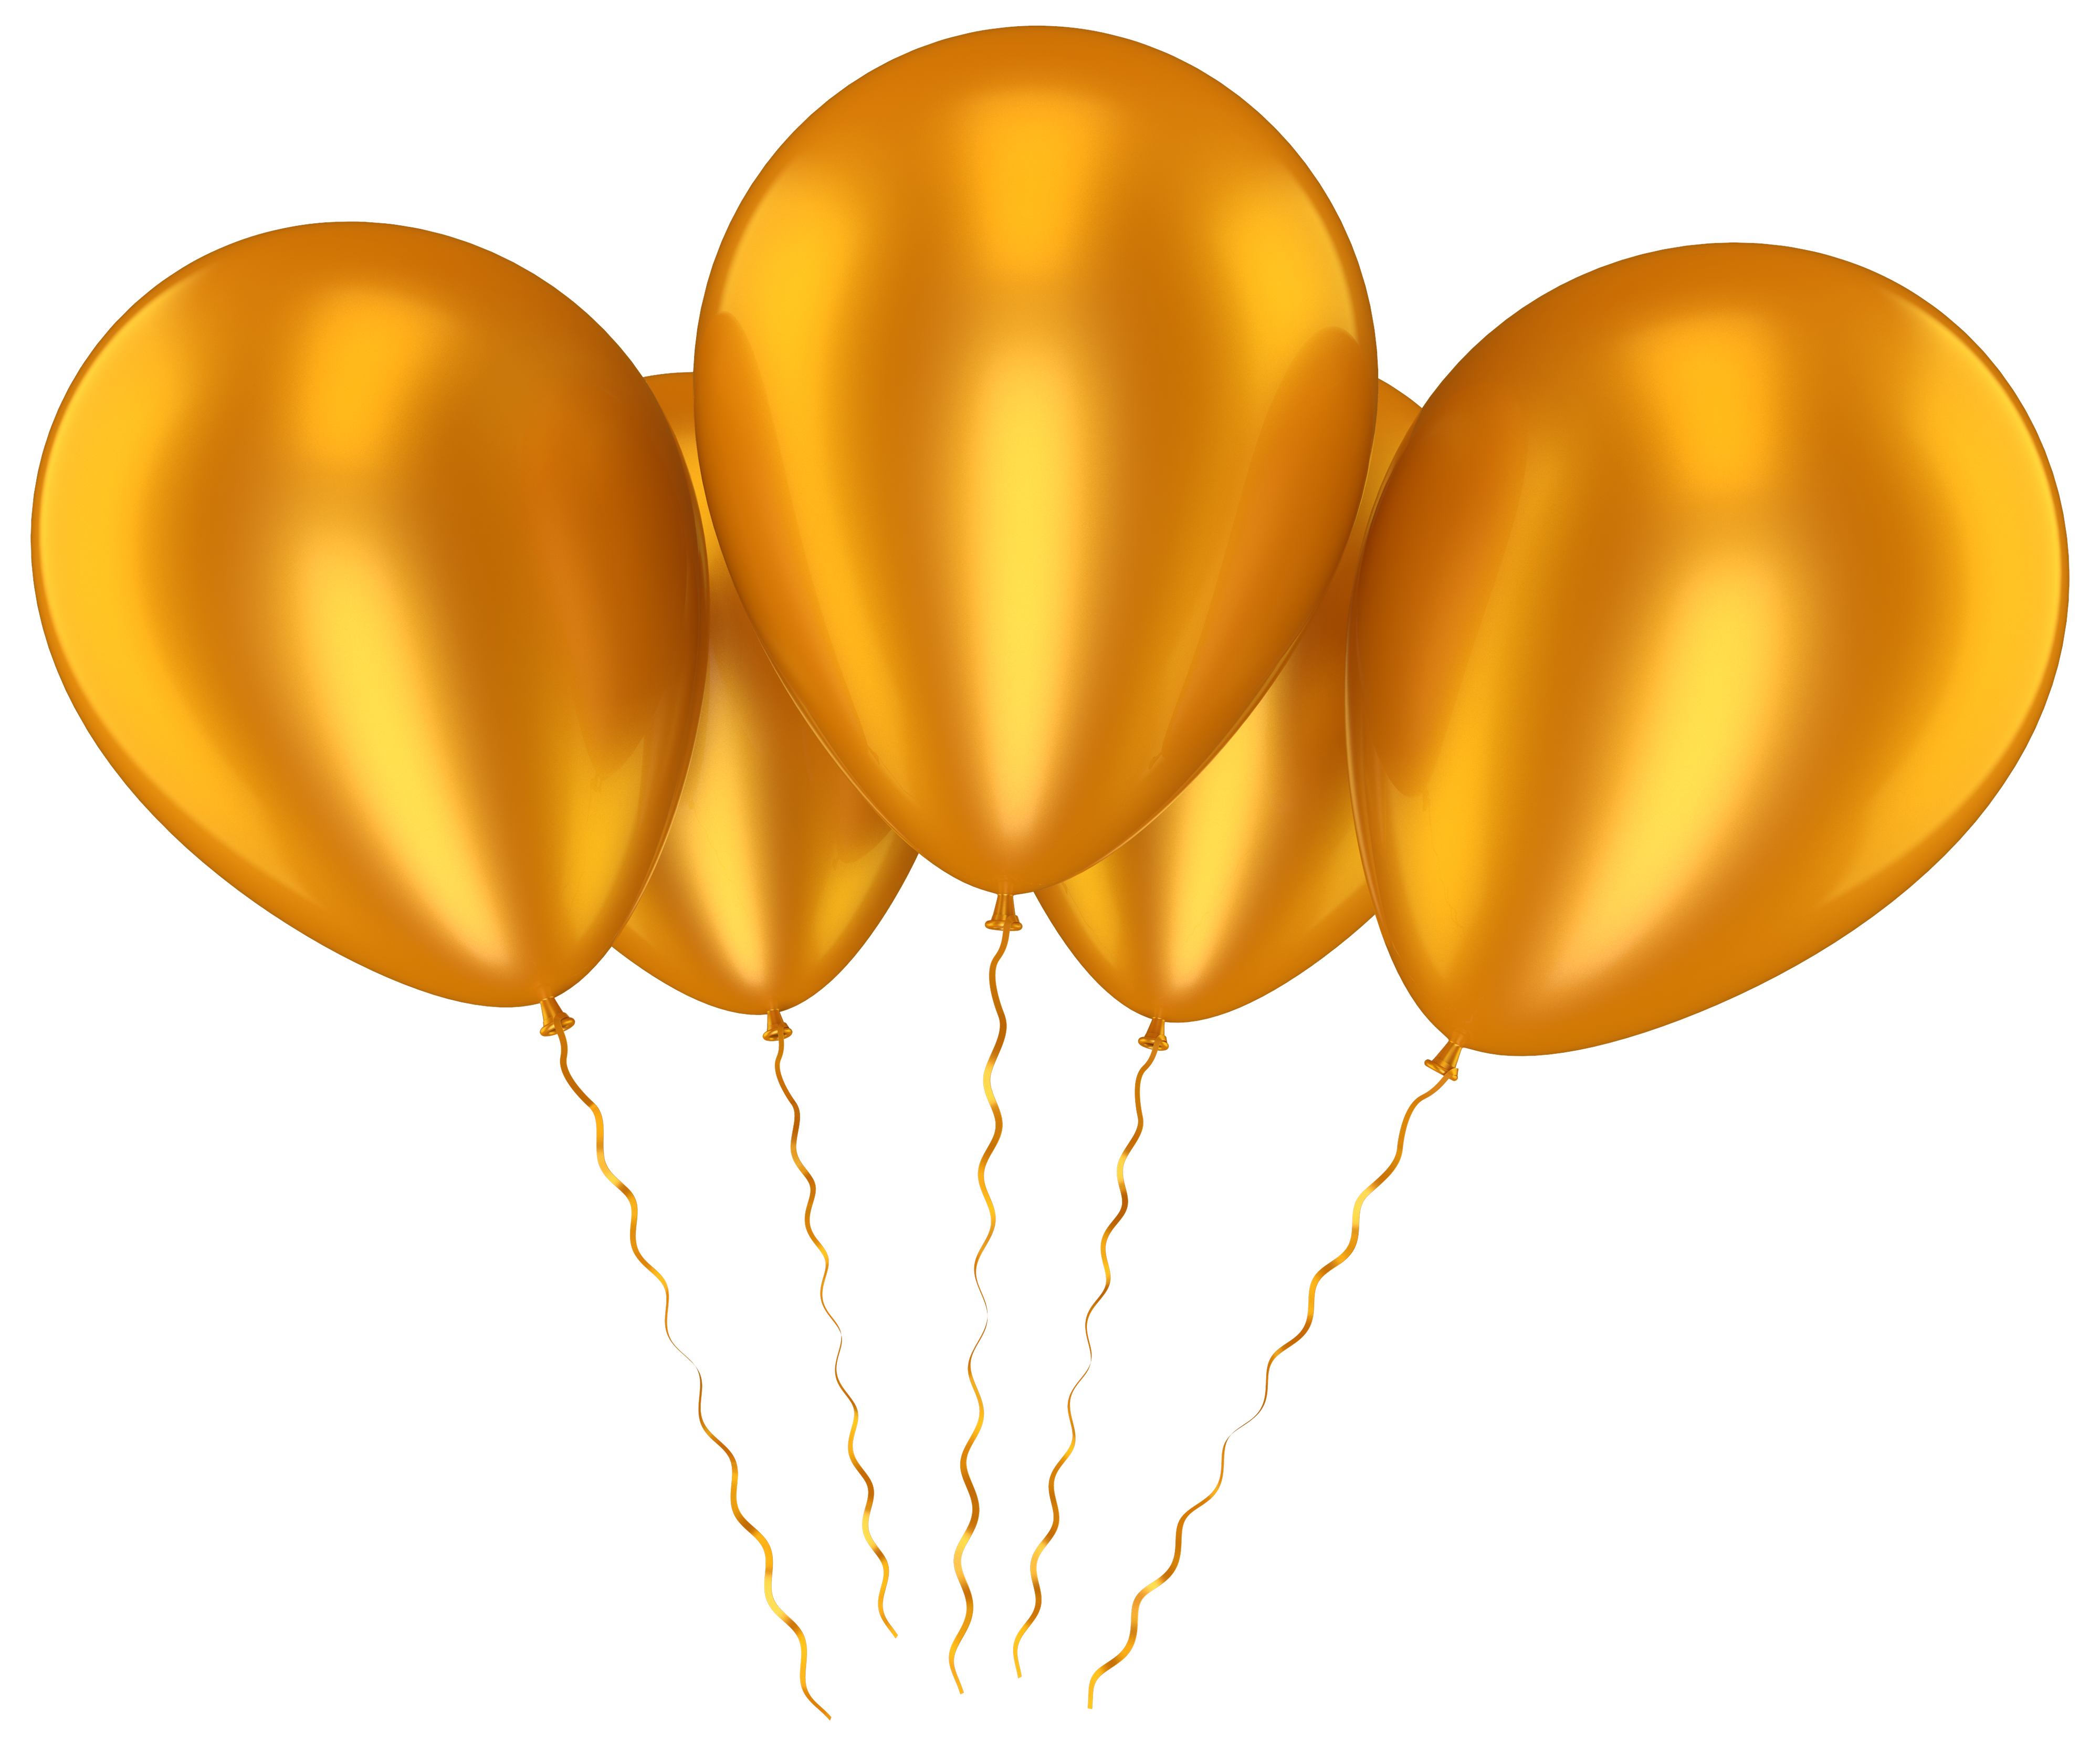 4000x3325 Gold Balloons Transparent Clip Art Pictureu200b Gallery Yopriceville